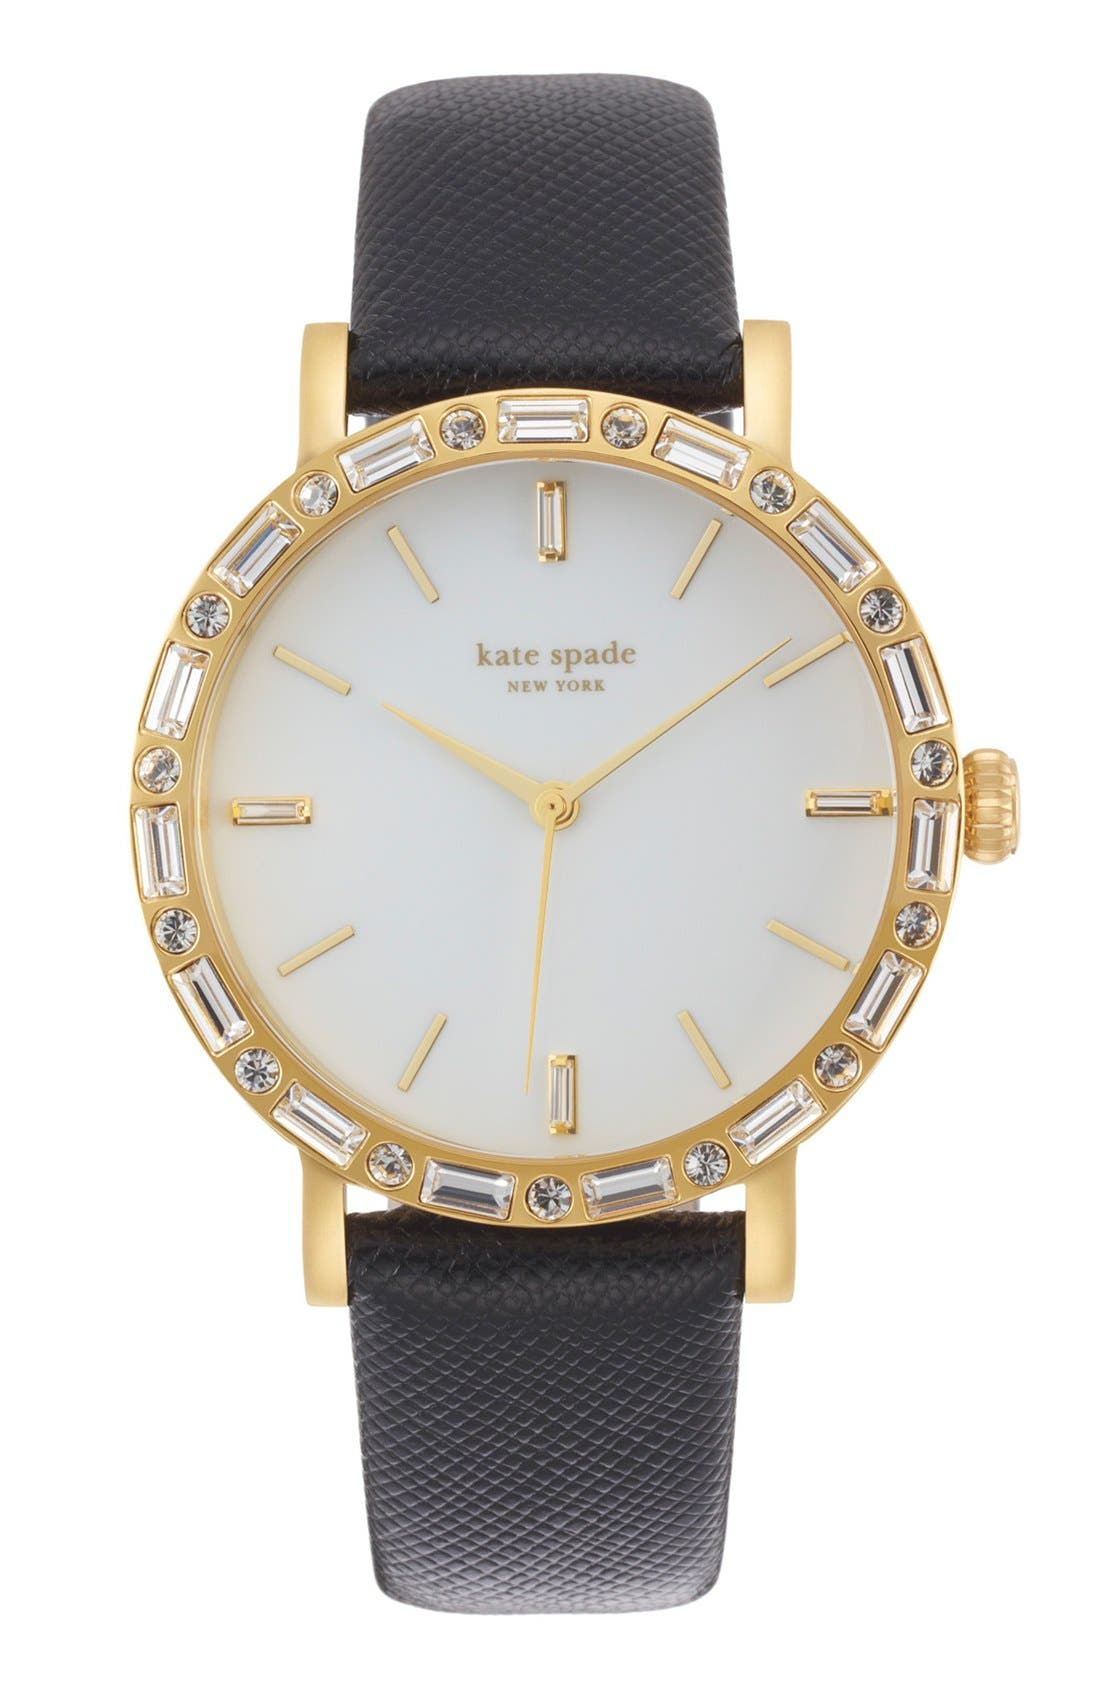 KATE SPADE NEW YORK,                             'metro' crystal bezel watch & straps set, 38mm,                             Alternate thumbnail 4, color,                             001